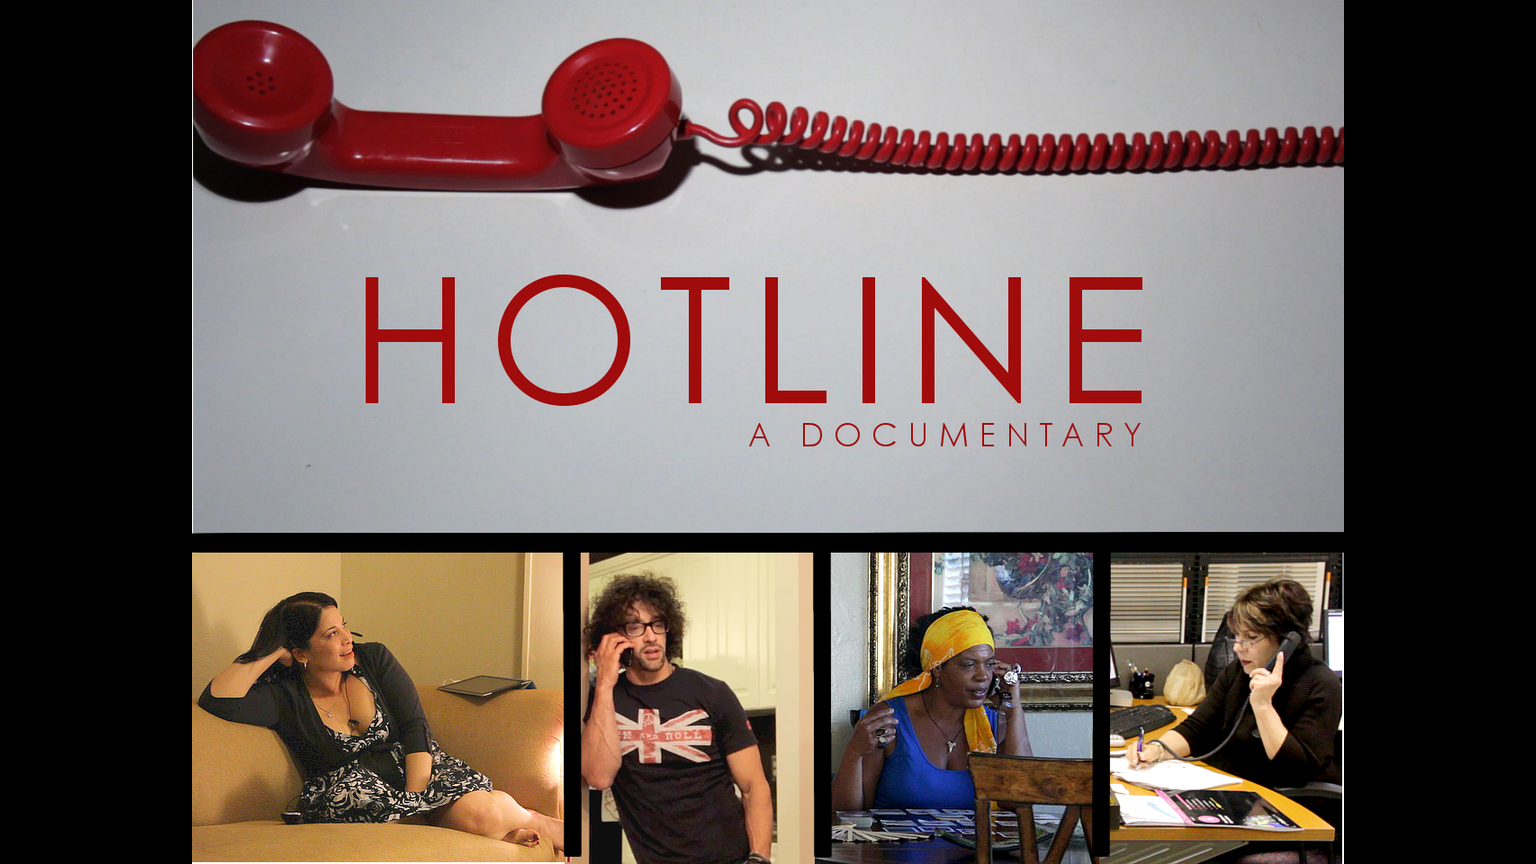 What would you call the people in documentaries?